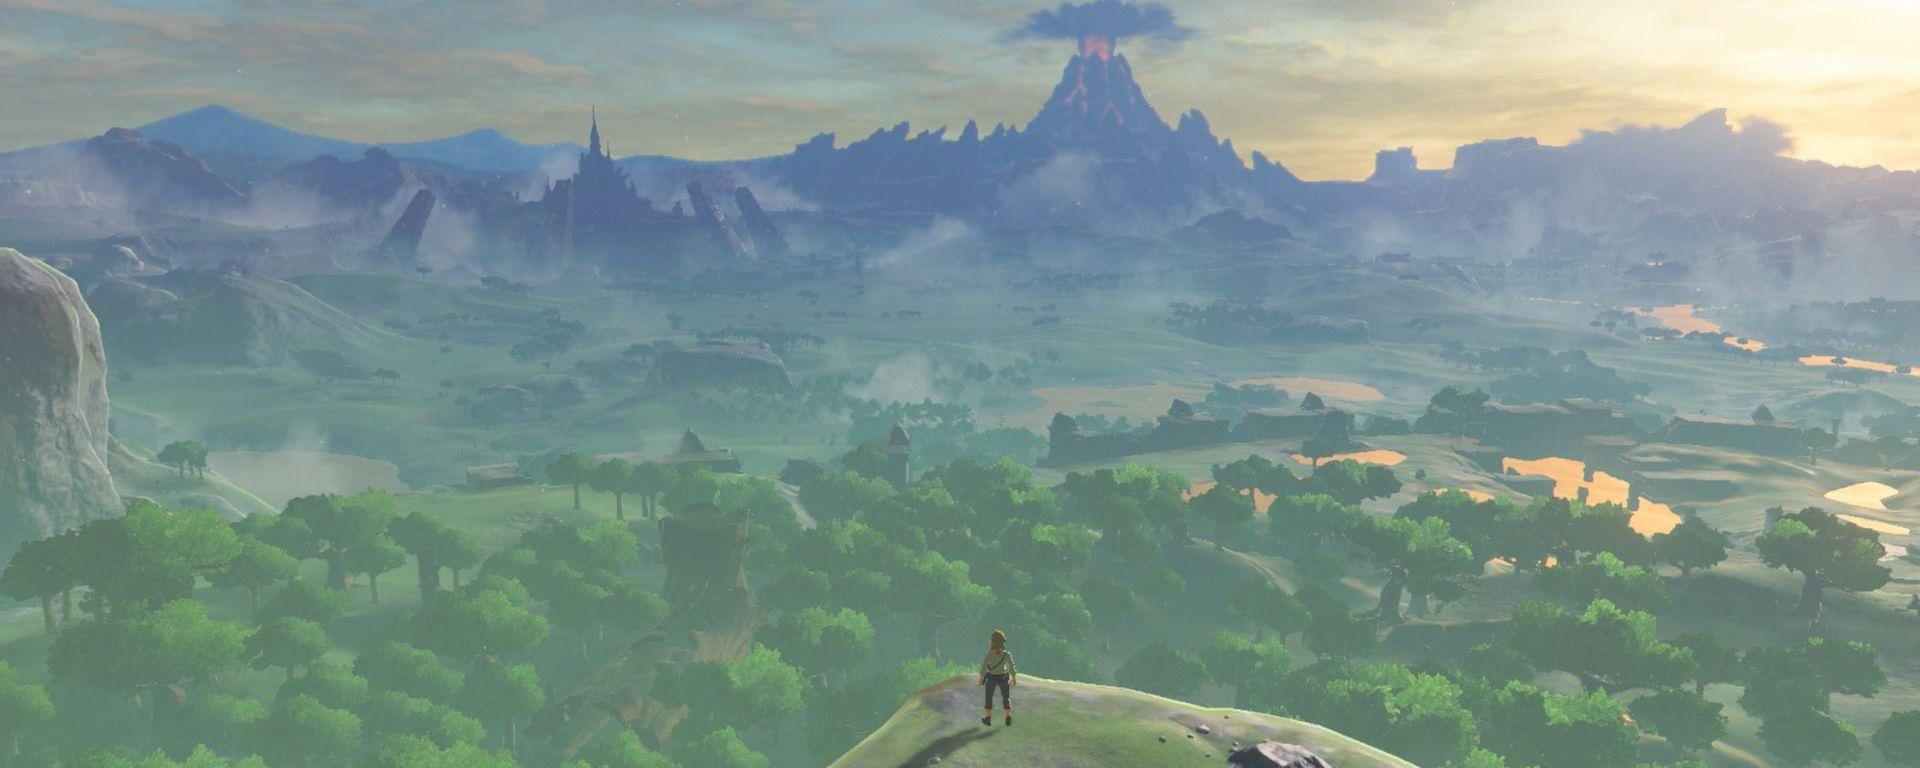 panorama dans le jeu The legend of Zelda Breath of the Wild